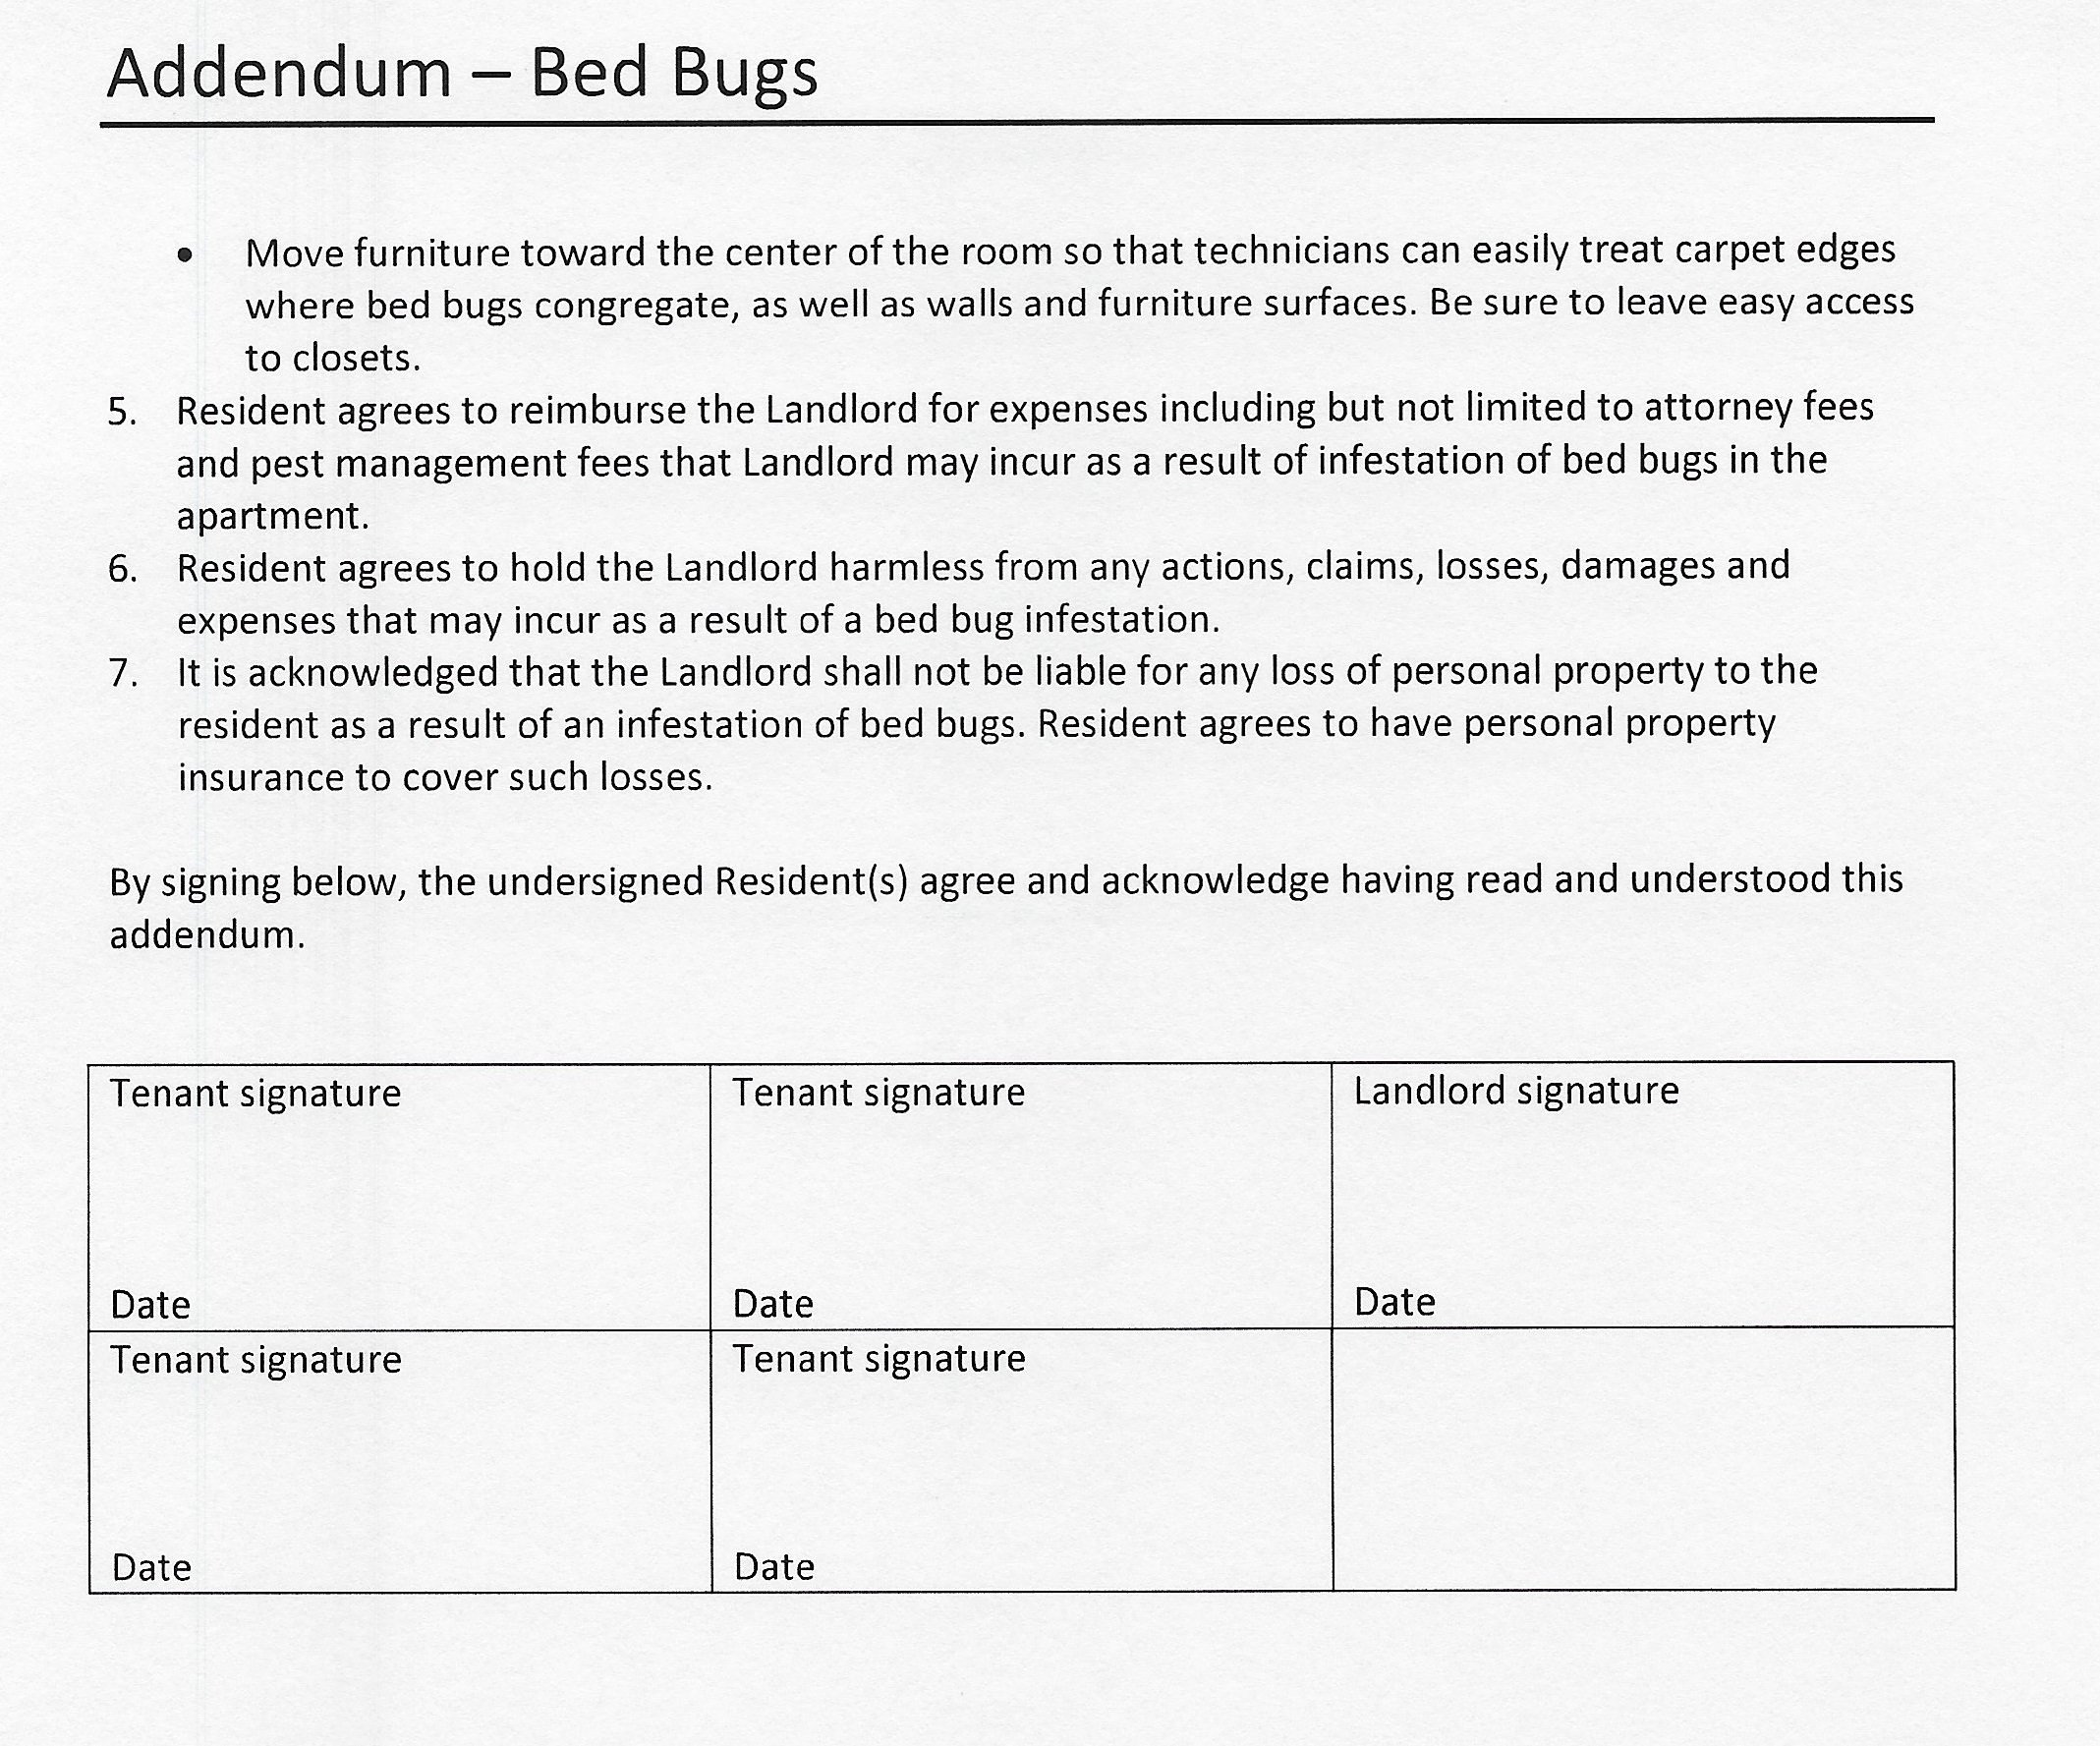 Addendum bed bugs example page 2